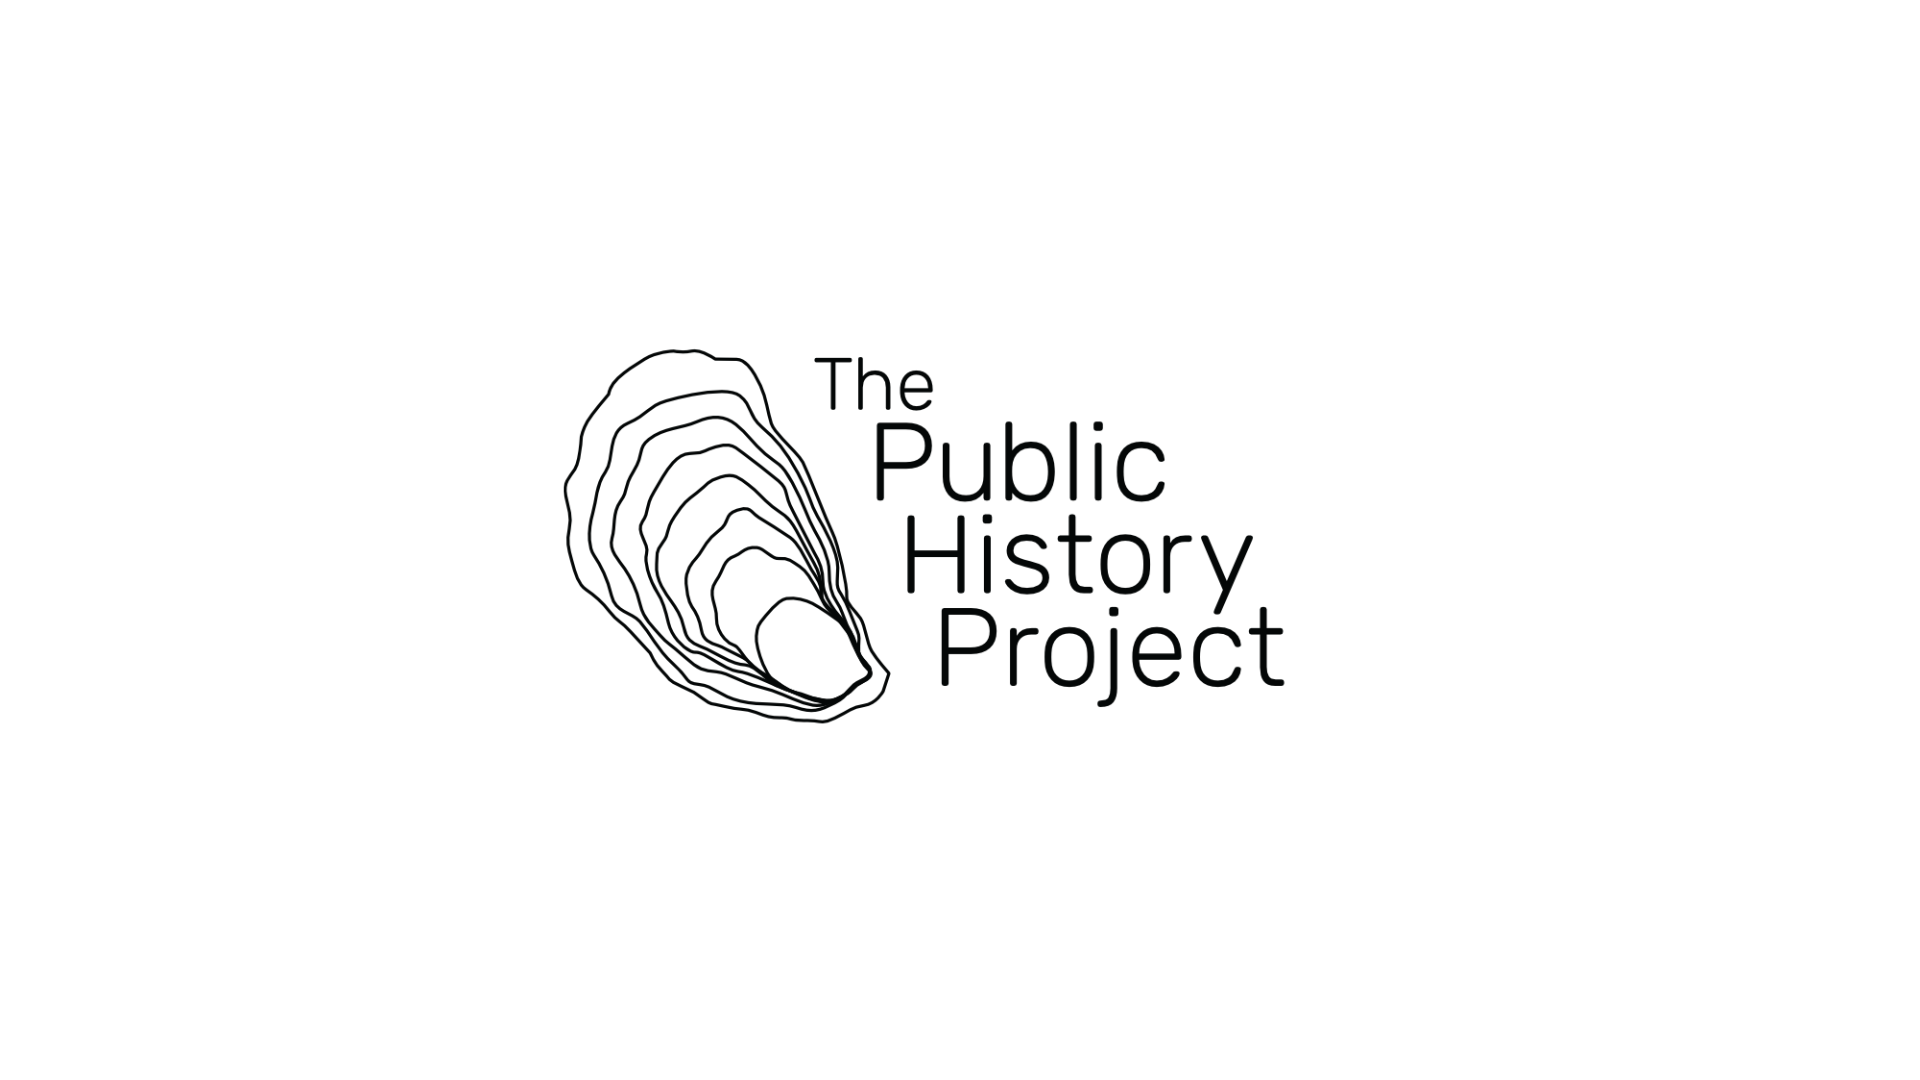 The Public History Project logo